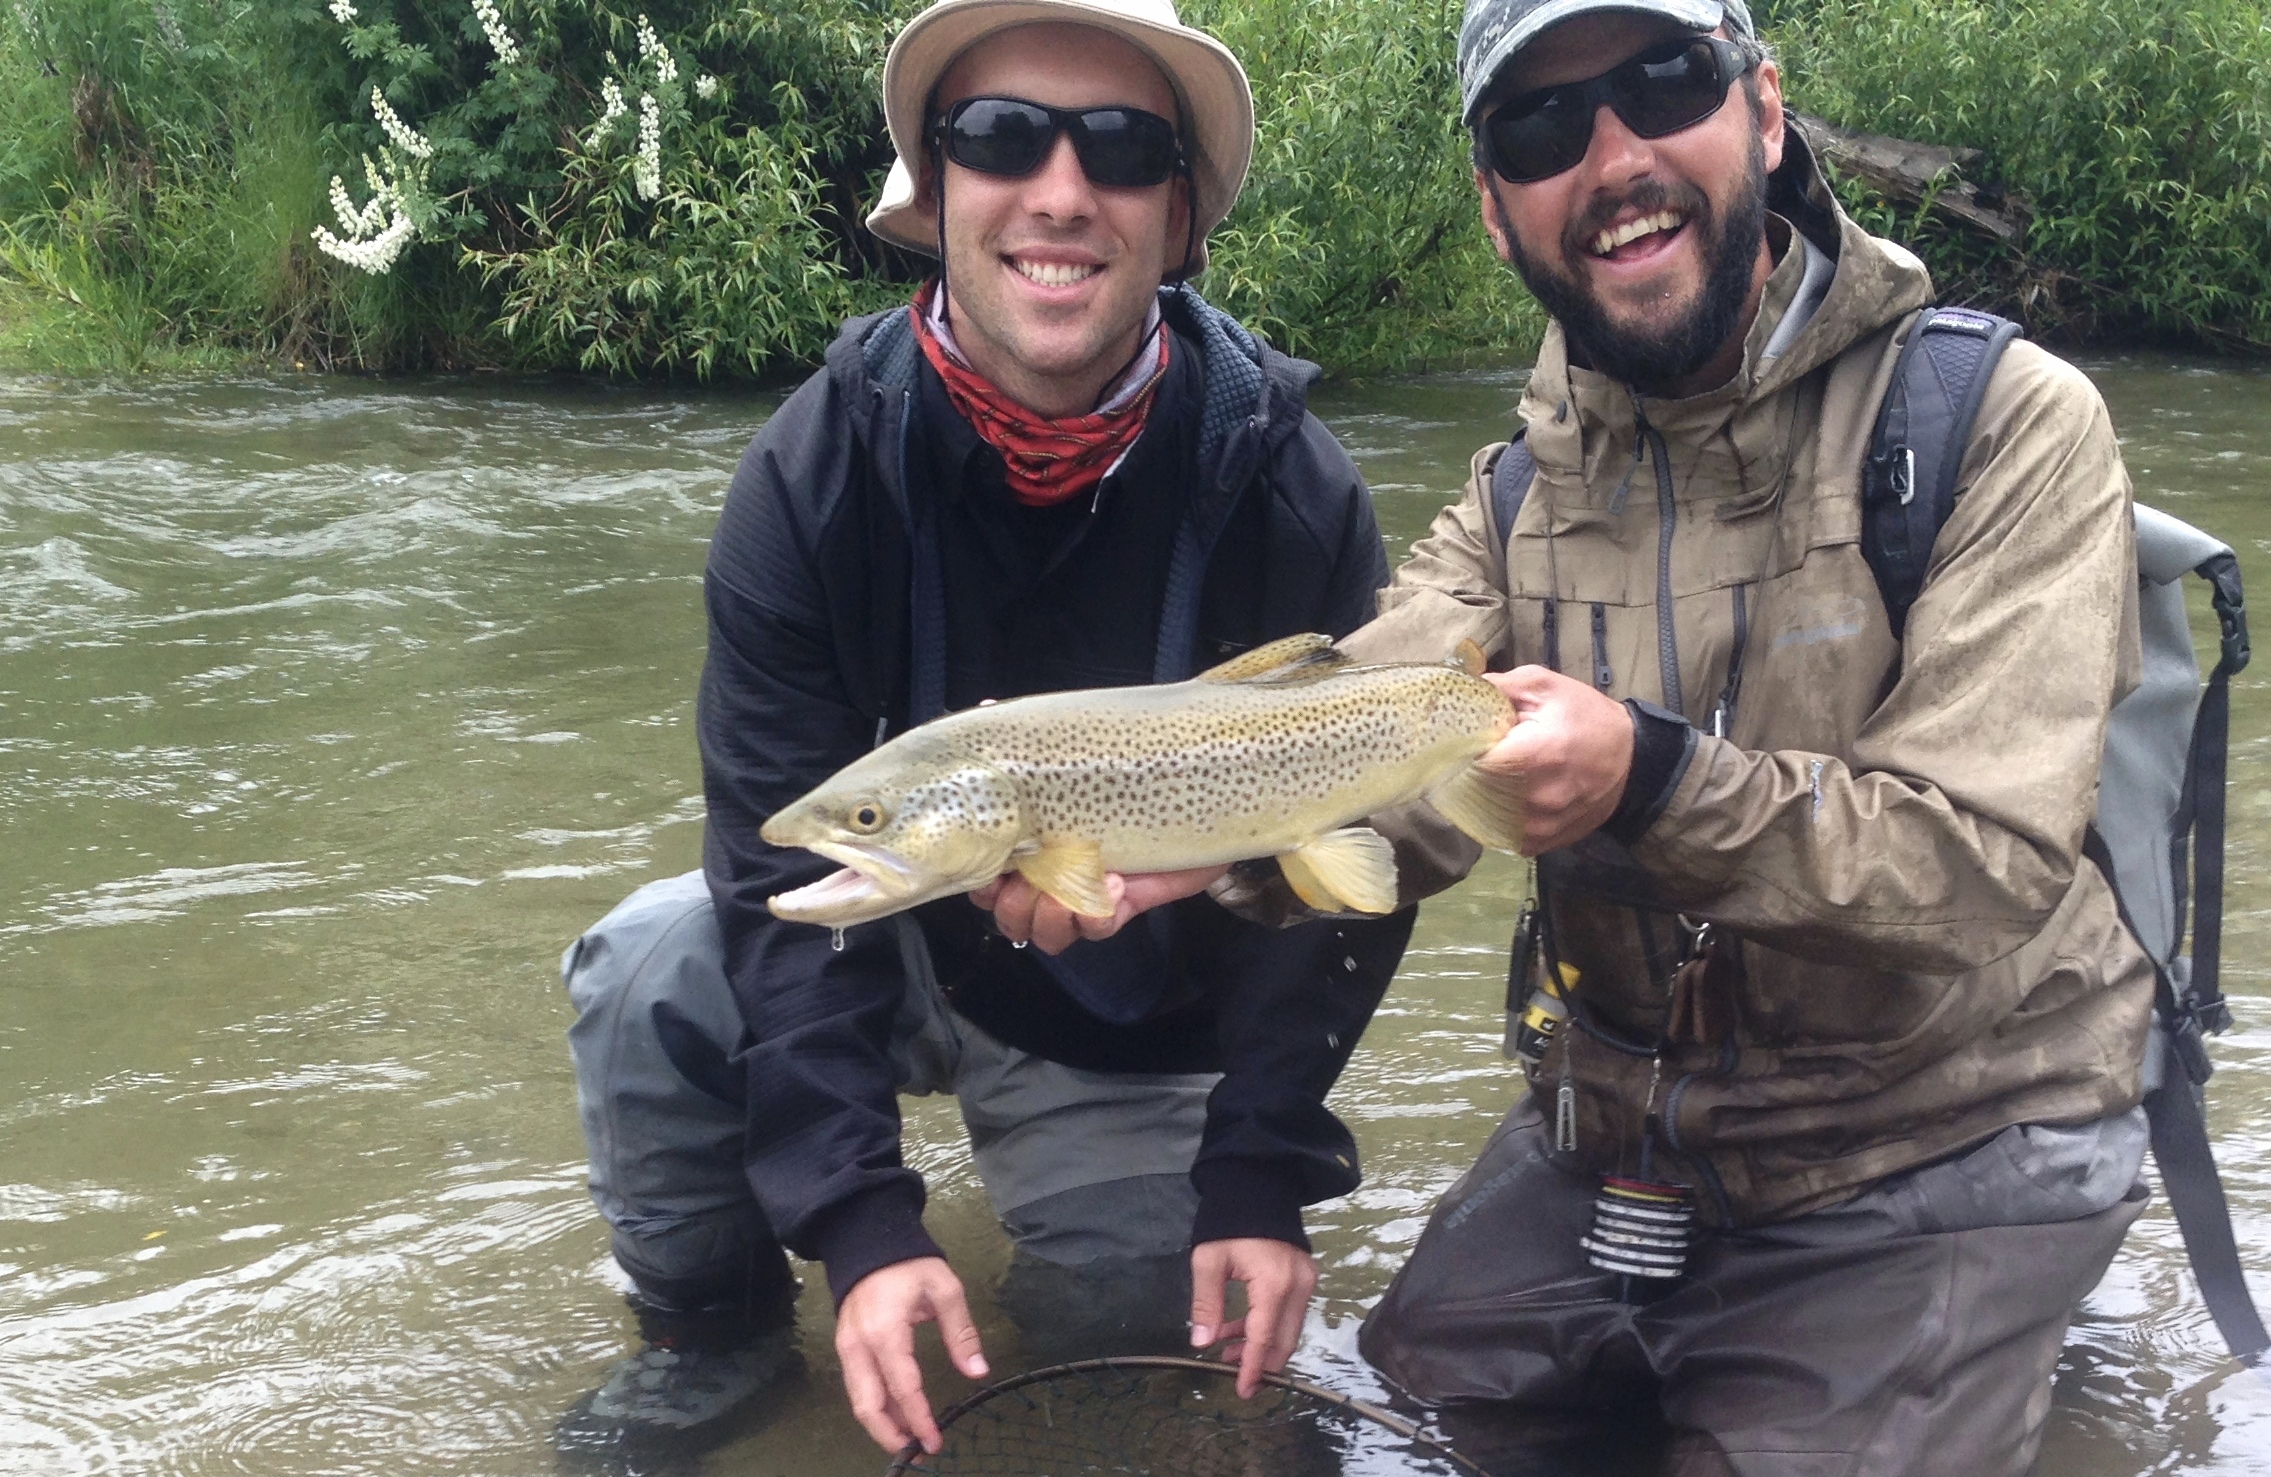 Wanaka New Zealand fly fishing guide Jeff Forsee